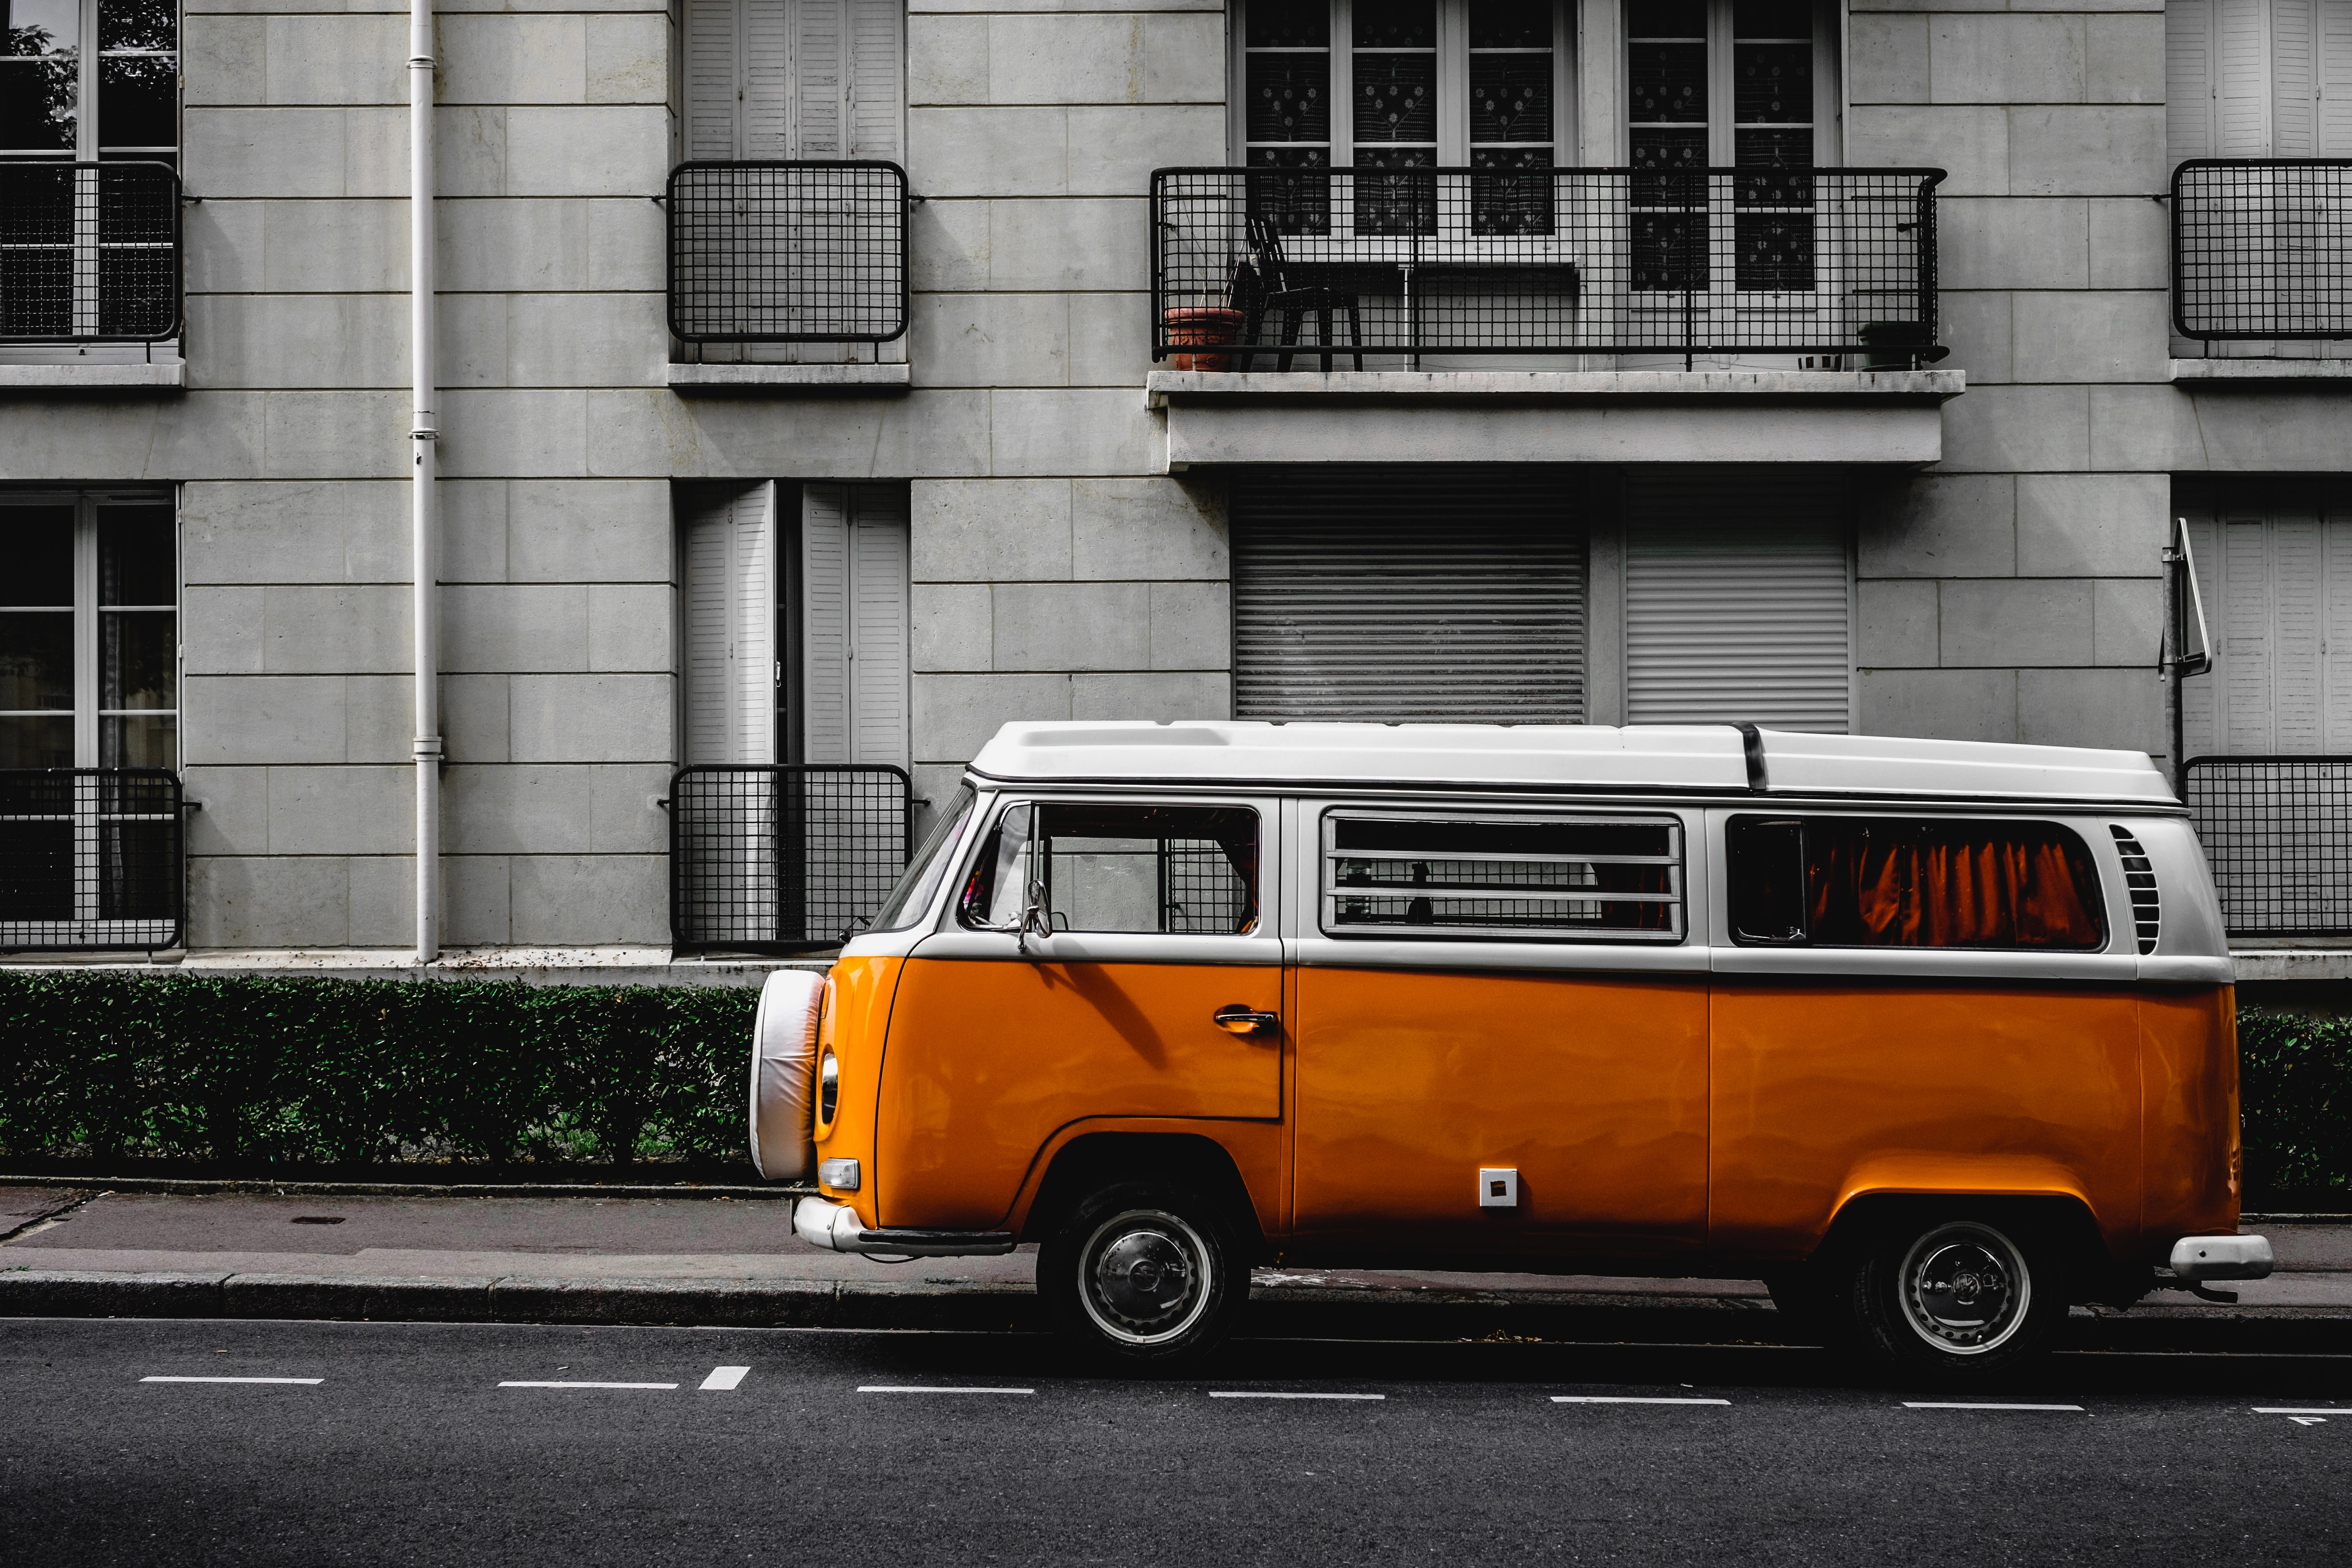 An old VW bus style van.